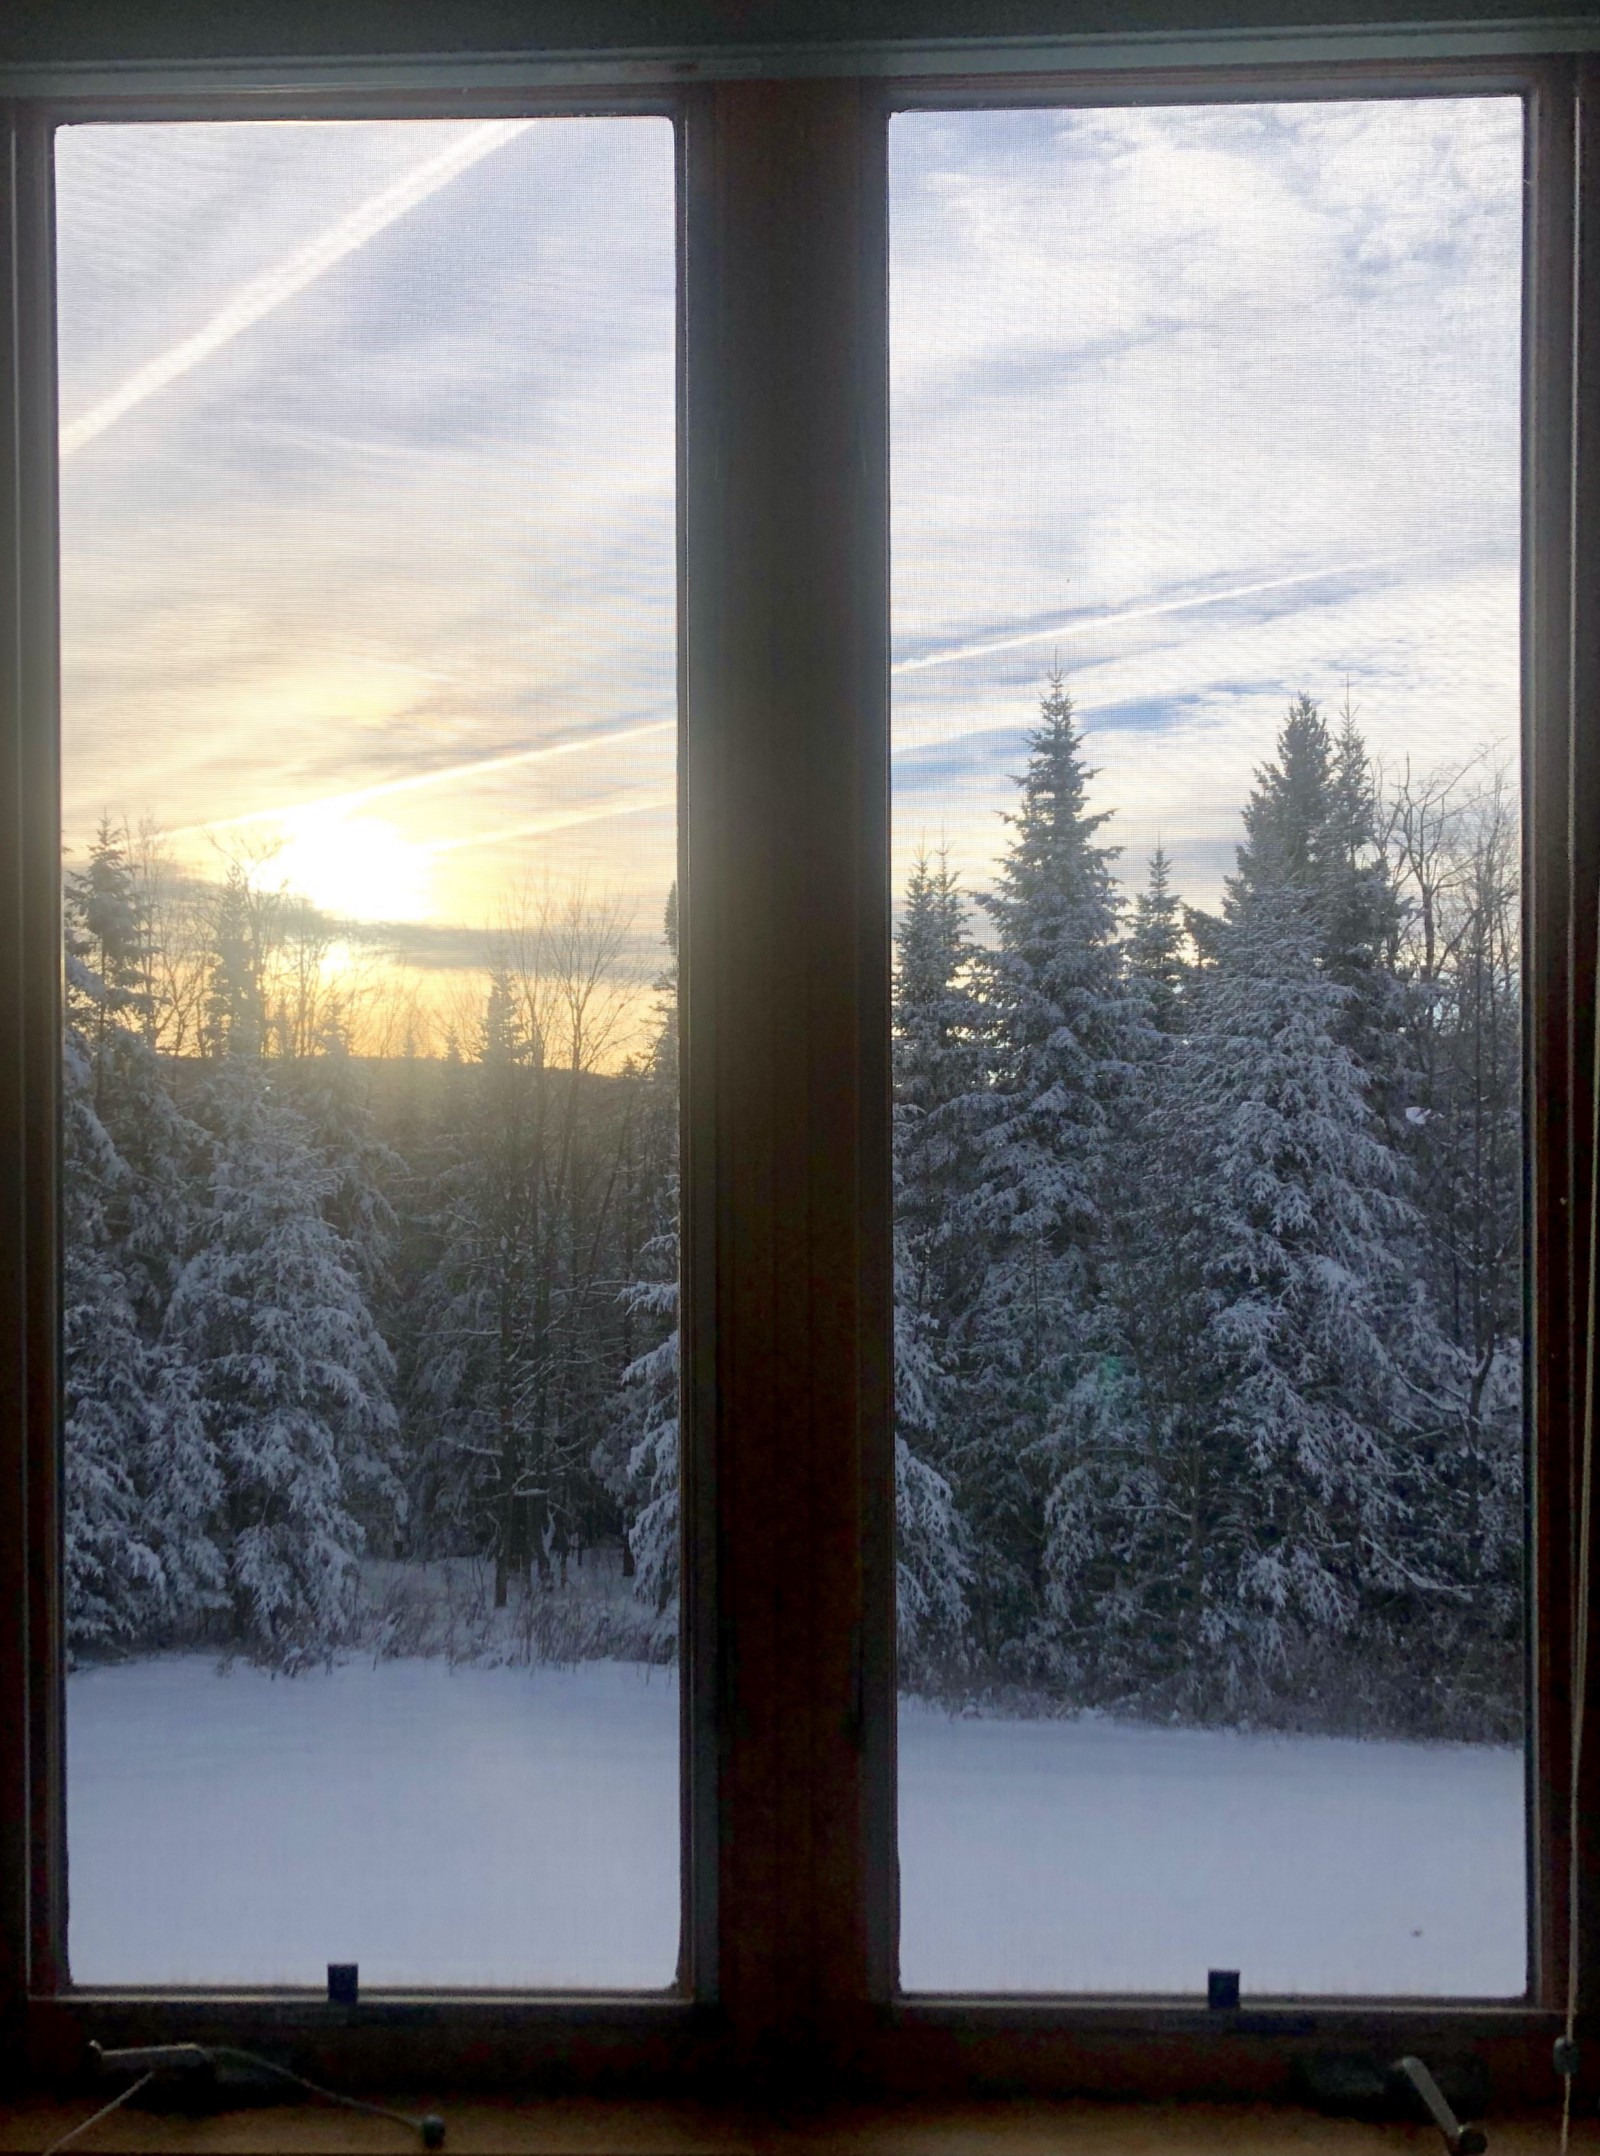 Northern parts of the world that currently have long cold winters will become climate havens as the Earth's temperature rises due to climate change. Snowy sunset in a Climate Haven, Photo by Lisbeth Kaufman